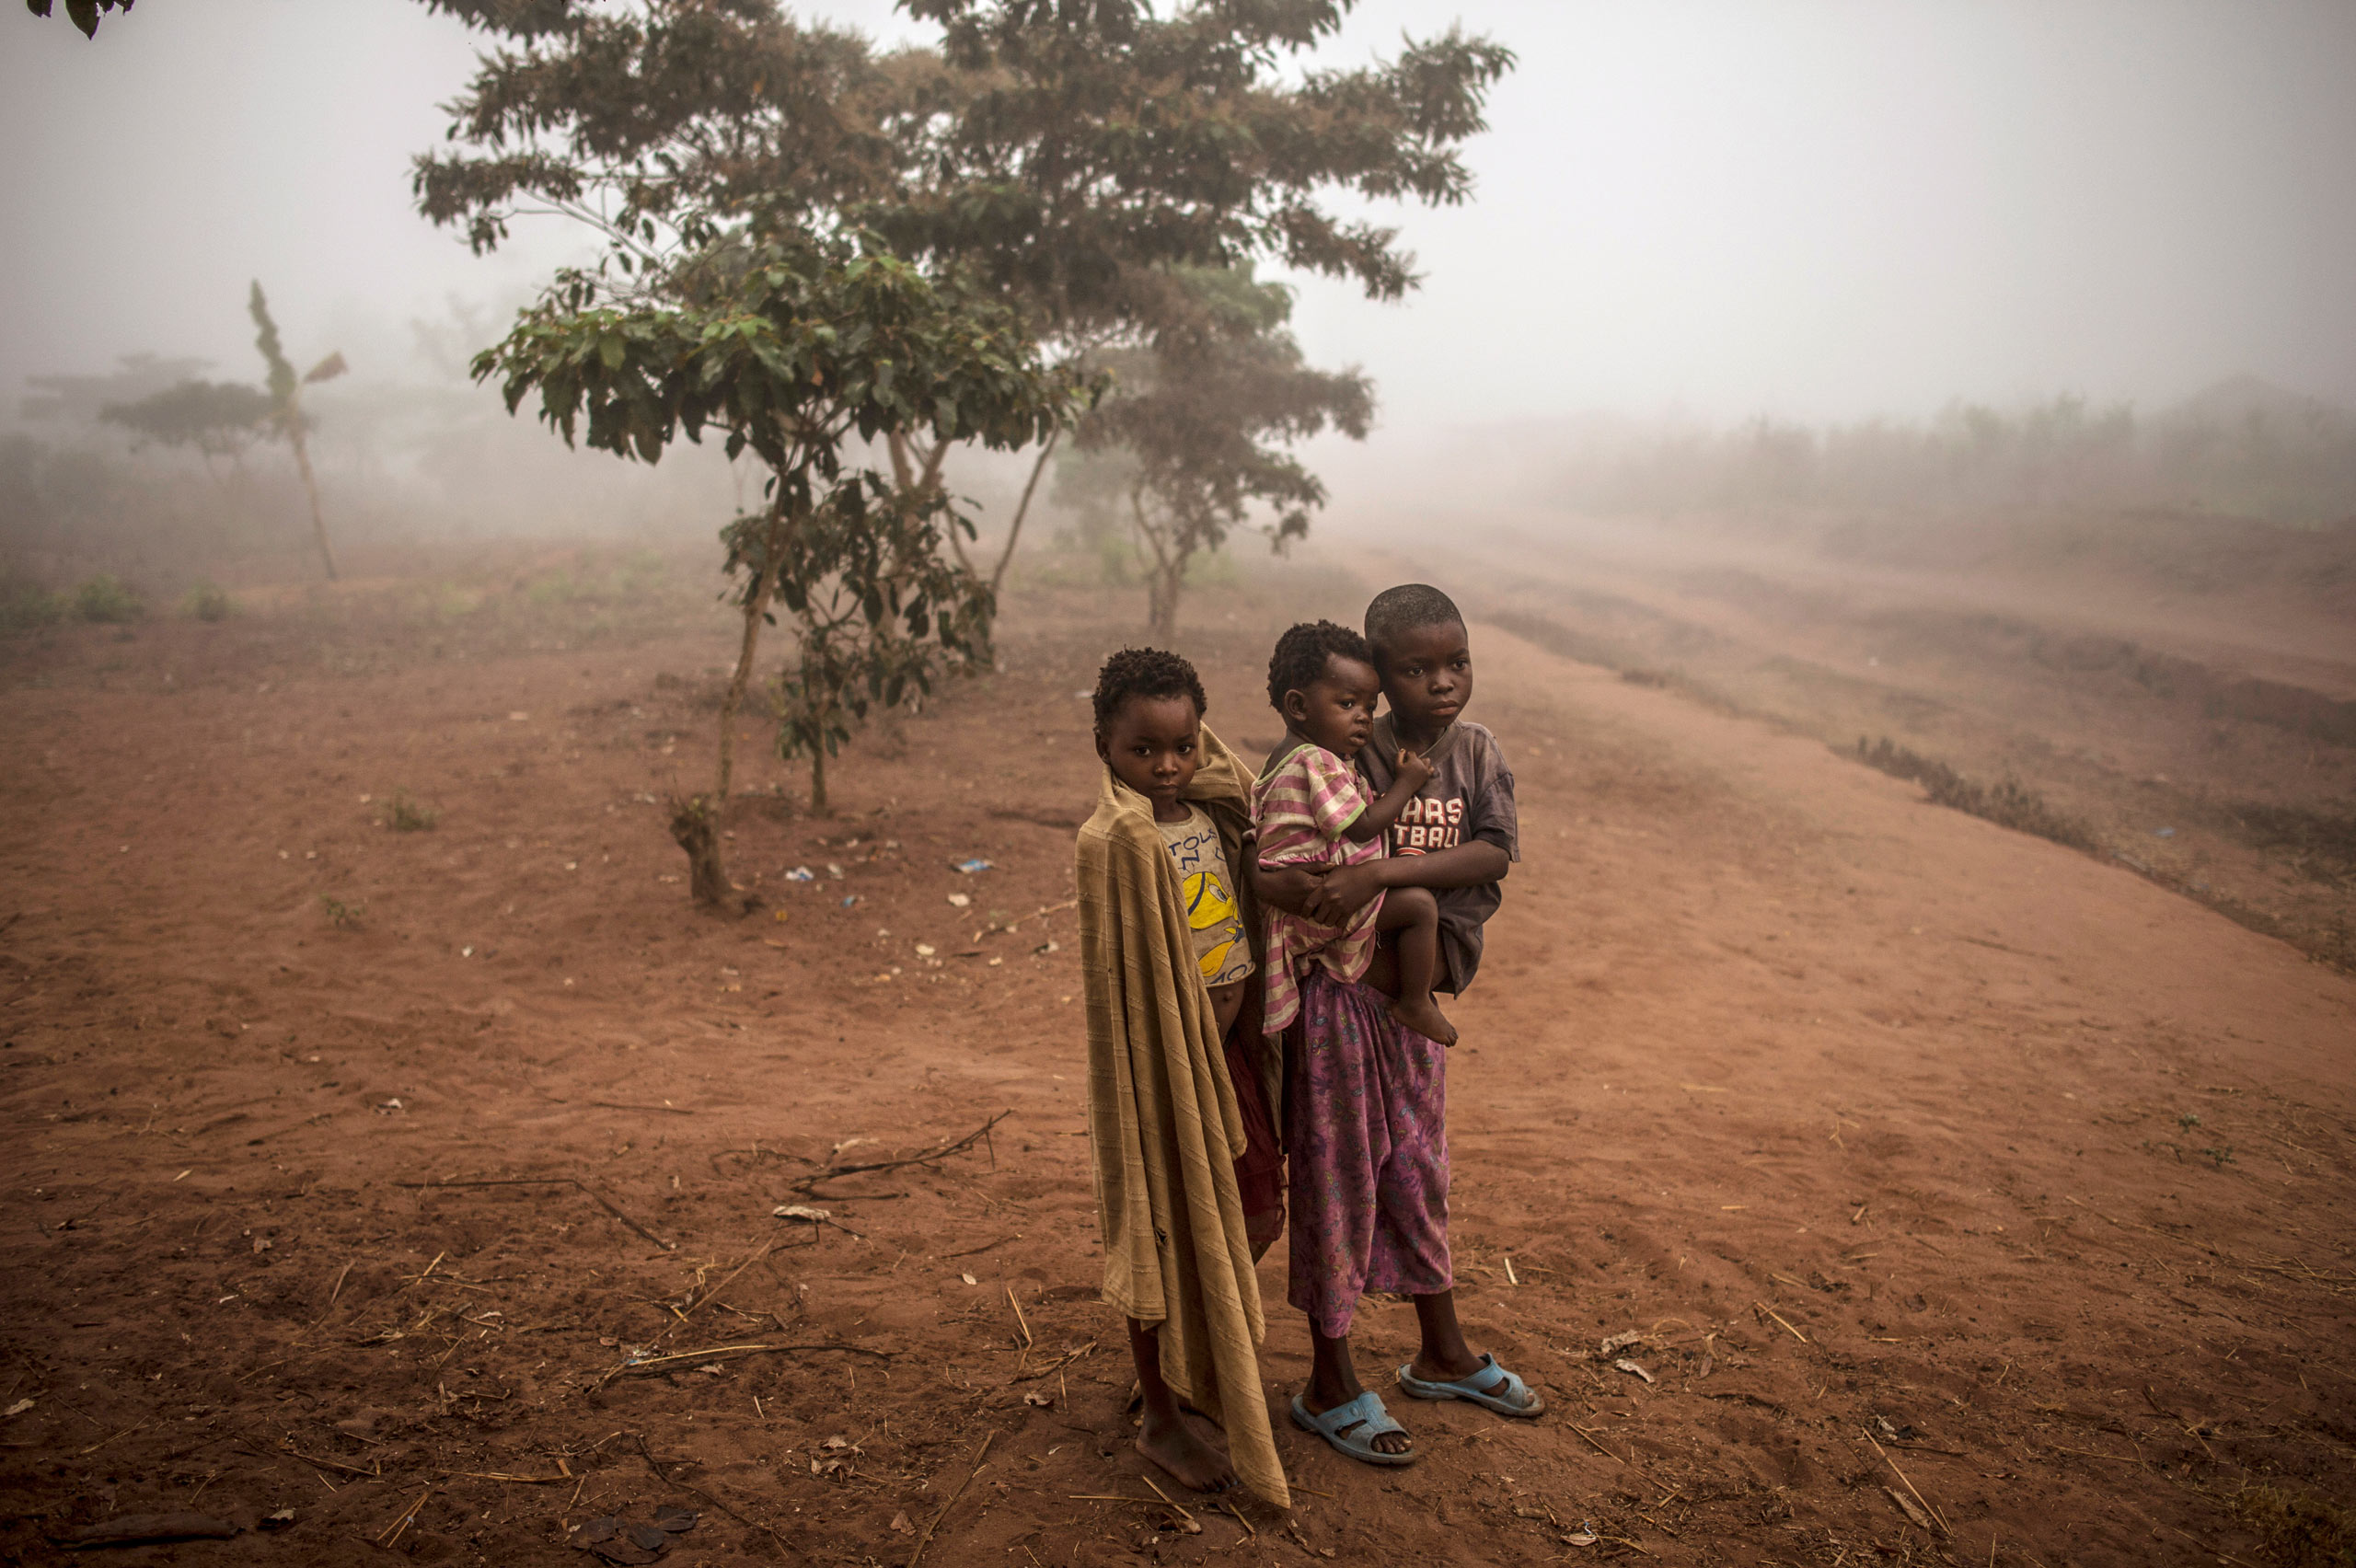 Congolese children who live in poverty in the village of Lungudi, Aug. 7, 2015.